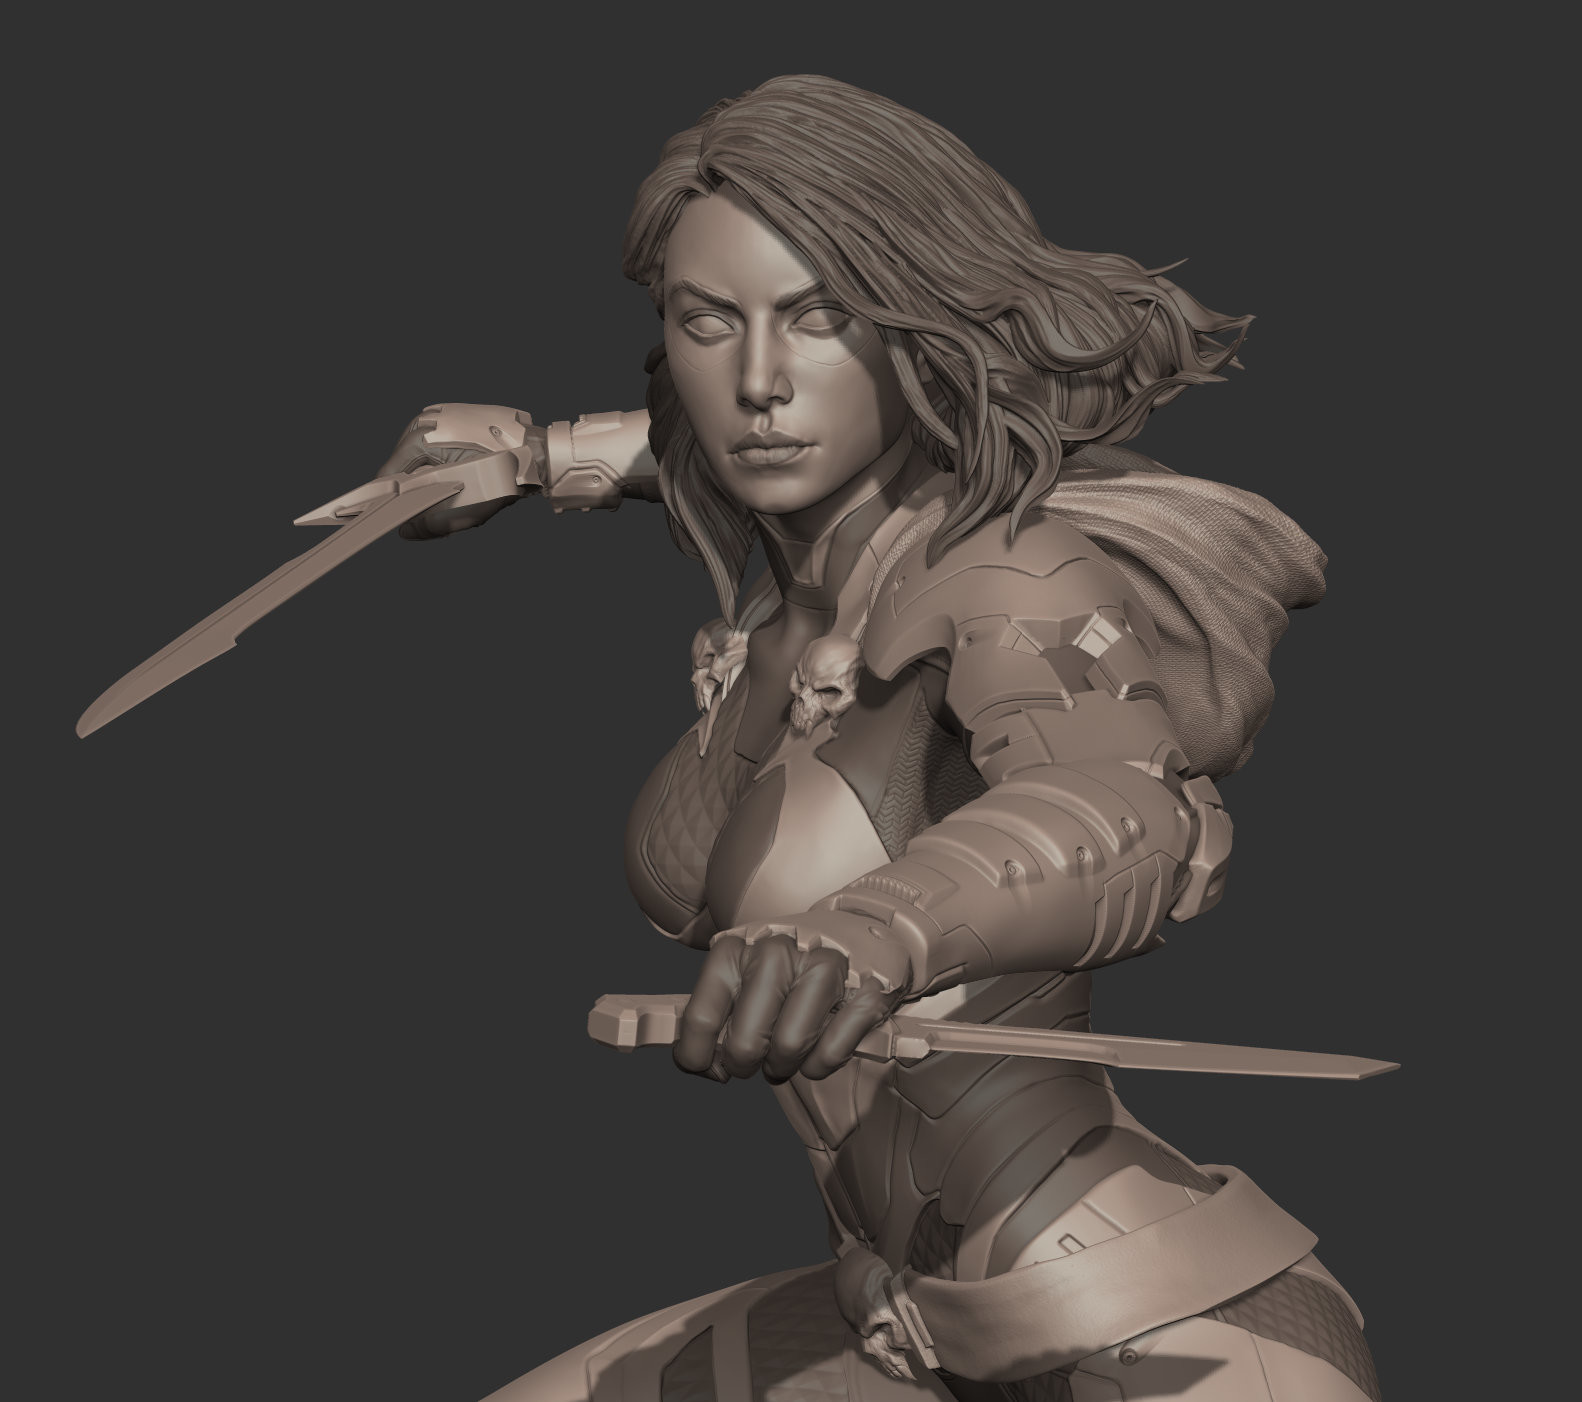 David giraud zbrush document12